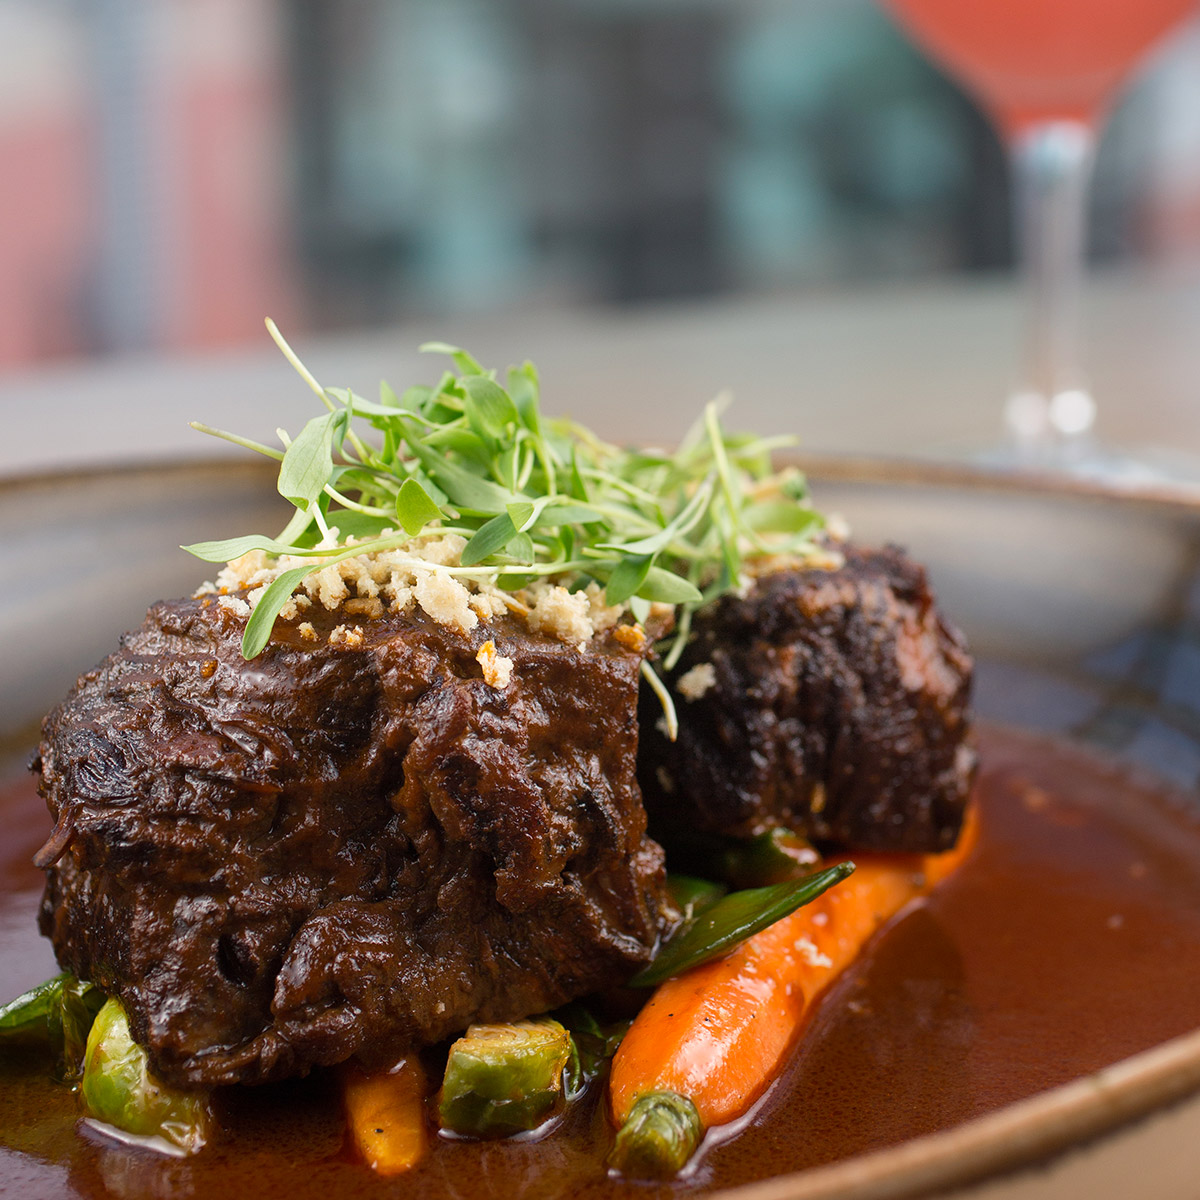 Cabernet Sauvignon Food suggestion - Braised Shortrib